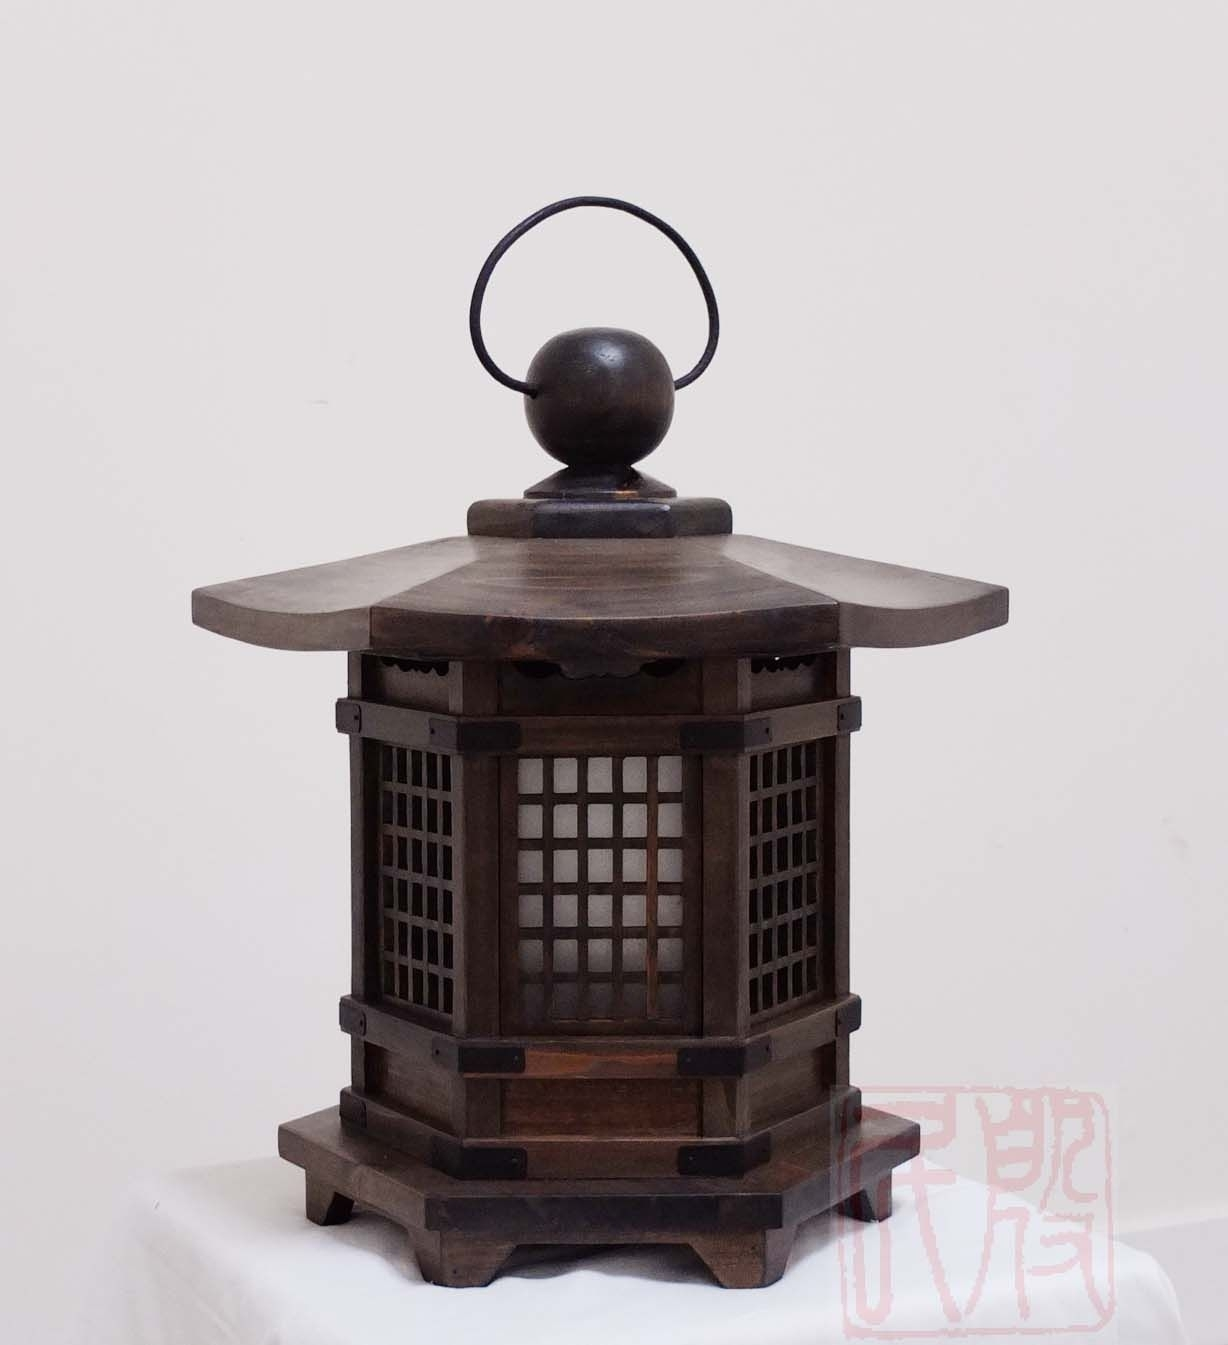 Antique Wood Japanese Lanterns - Google Search … | Wooden Lamp | Pinte… with regard to Outdoor Japanese Lanterns for Sale (Image 2 of 20)